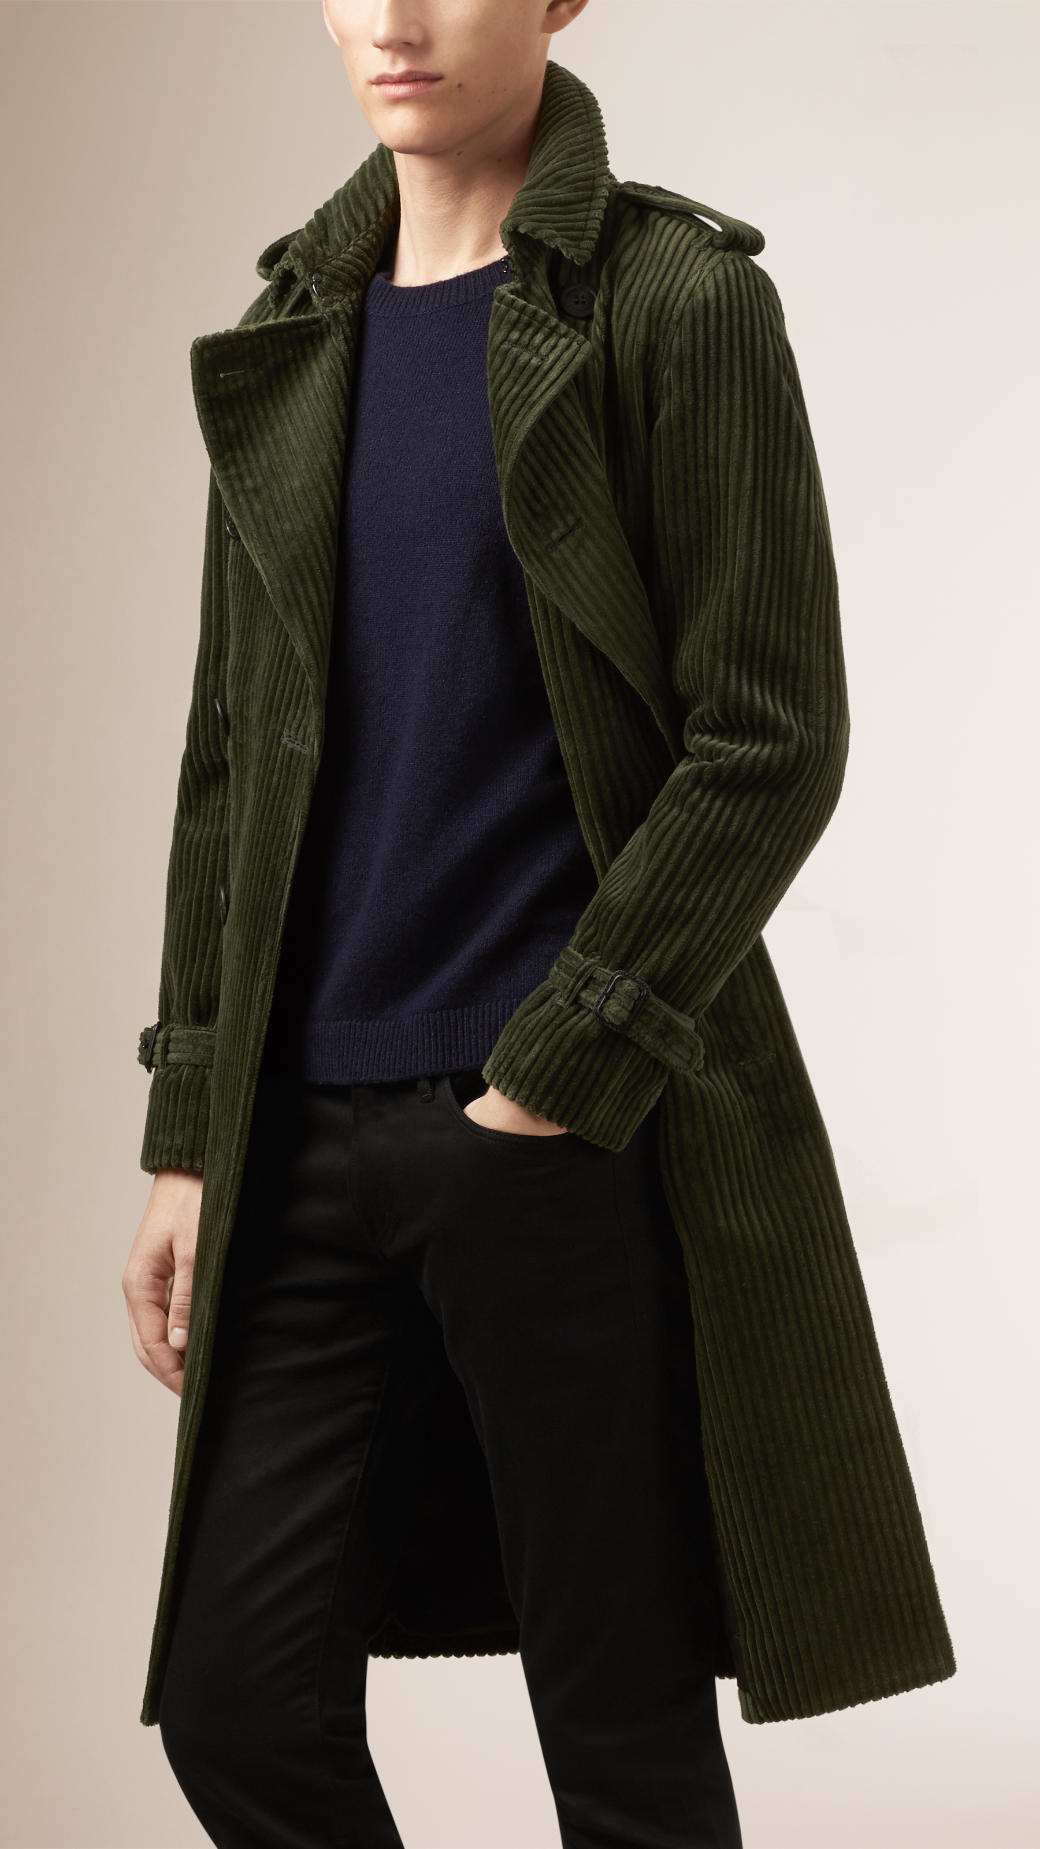 796e78592e88 in in in Lyst Corduroy Men Green Coat for for for Burberry Trench SW4aqWU8